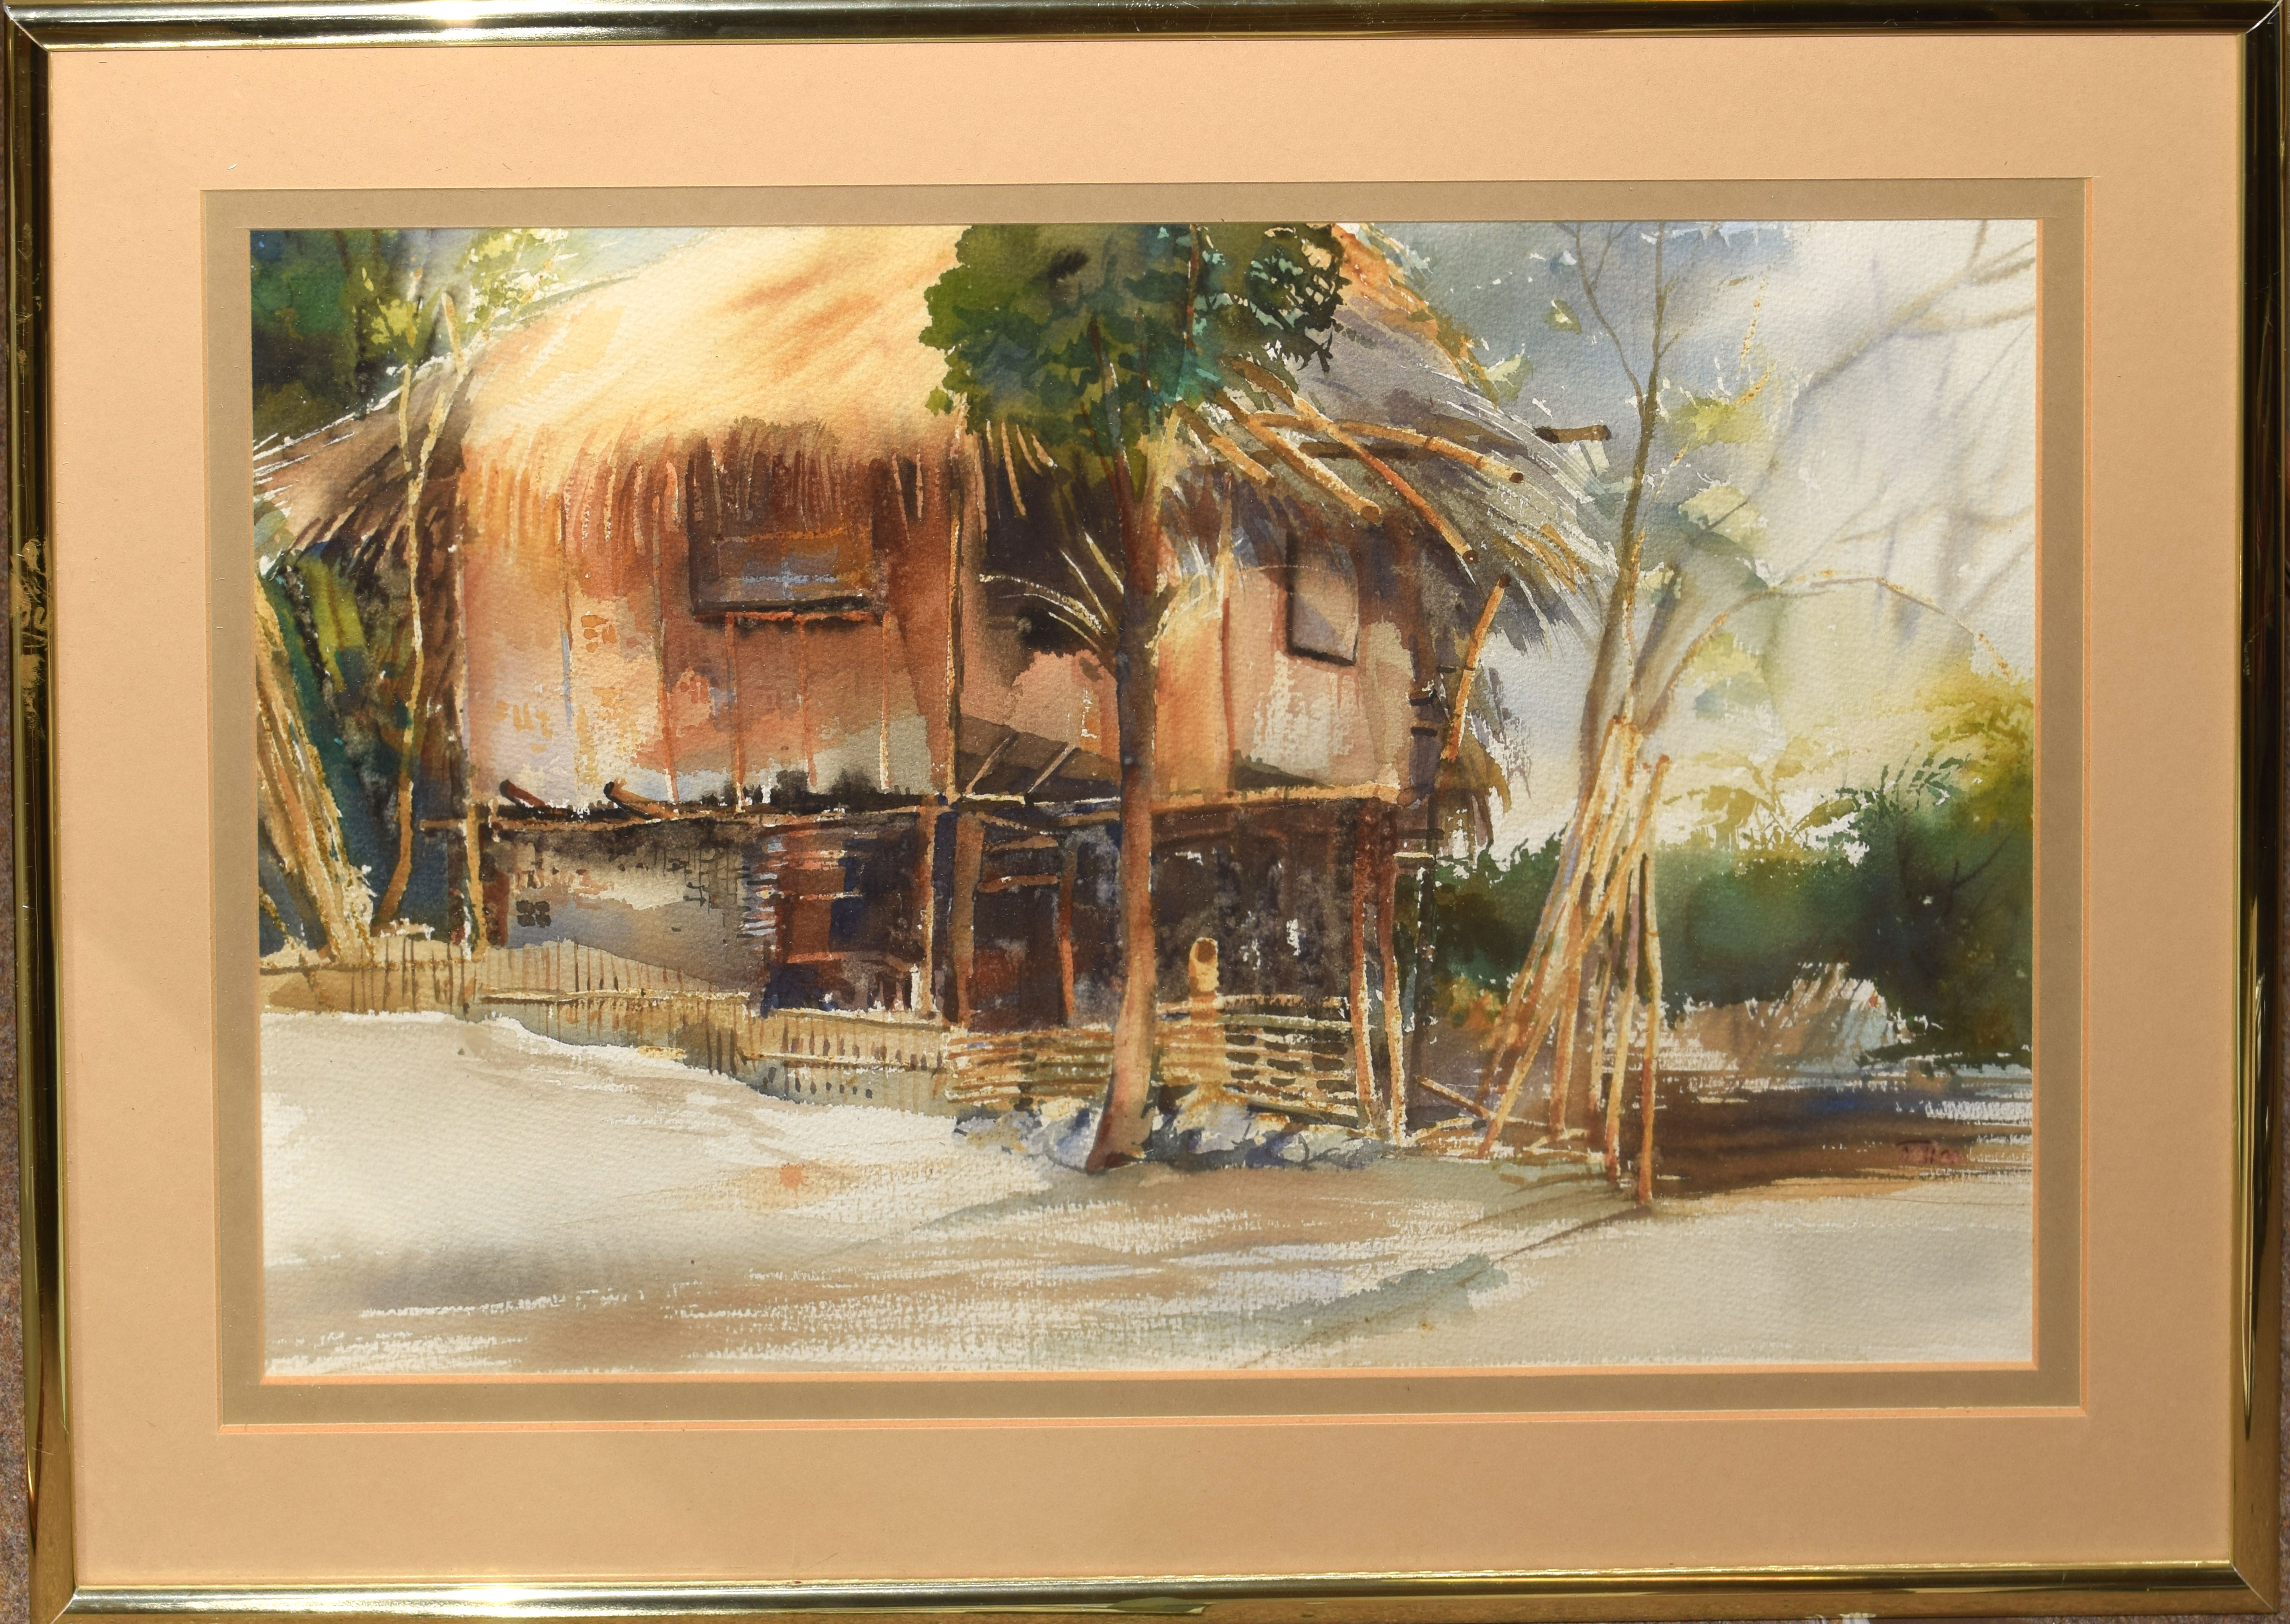 Caribbean Scene, watercolour, indistinctly signed lower right, 34 x 53cm